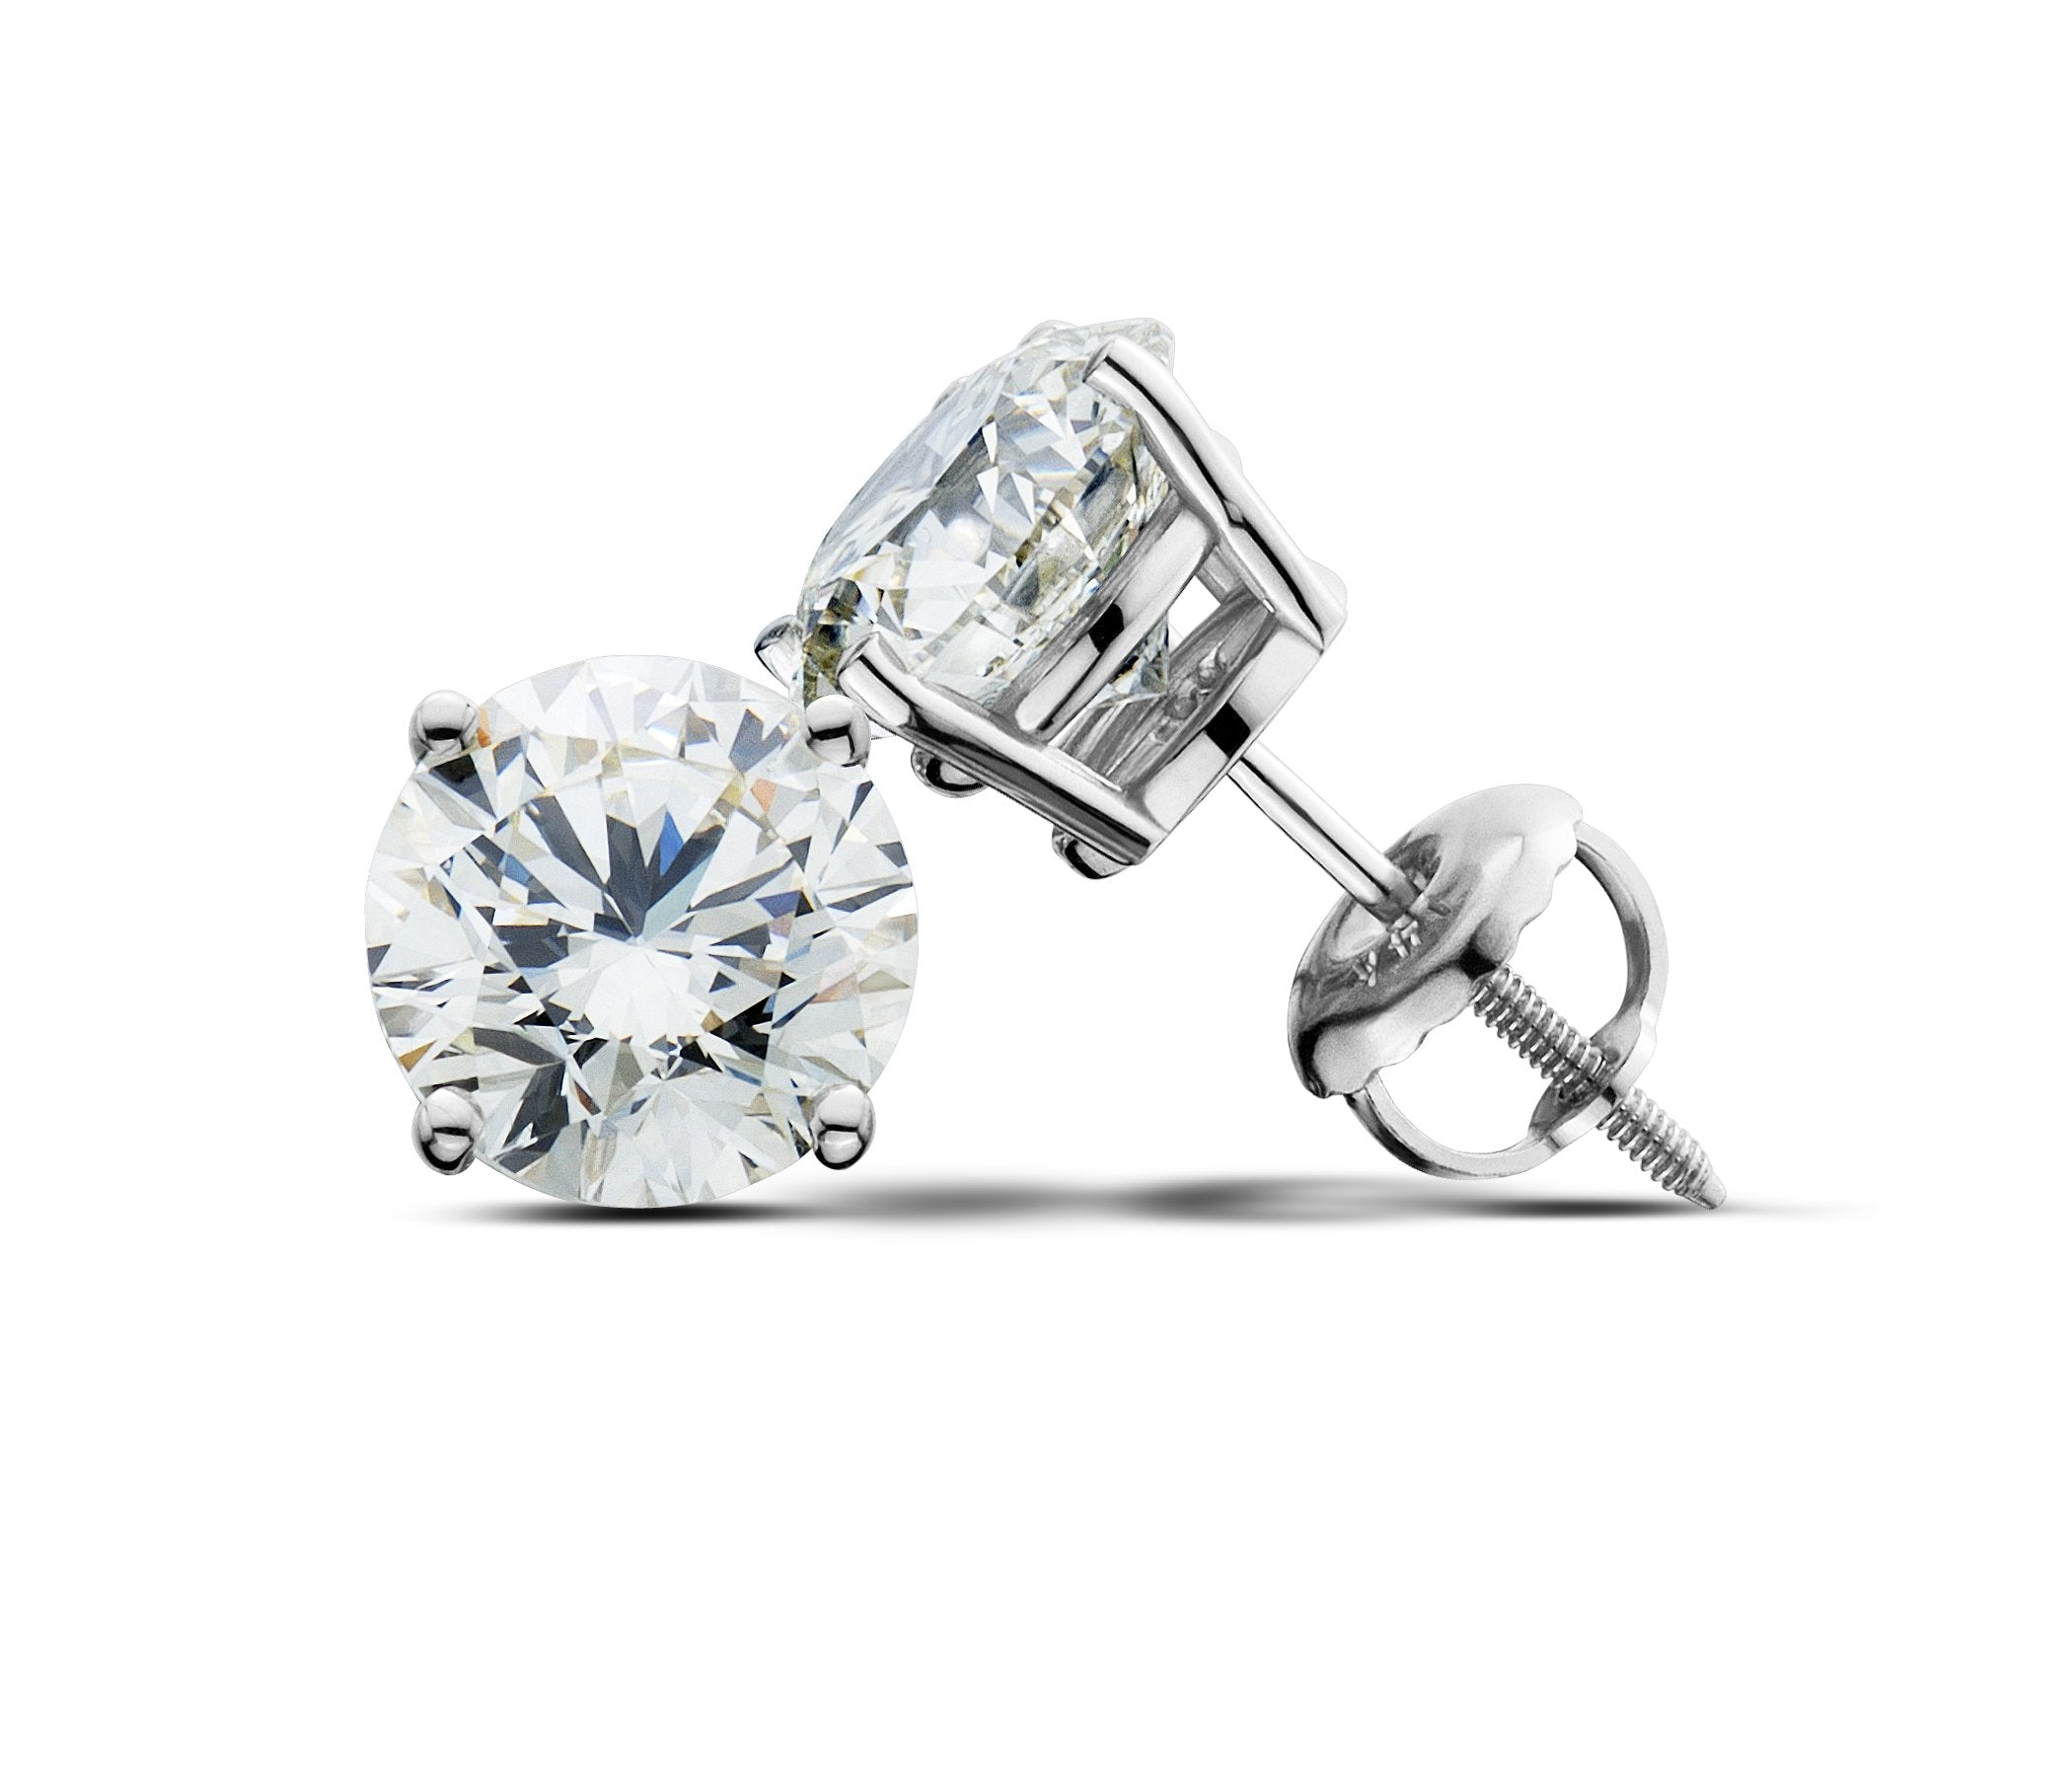 14K White Gold 3.13CT TW Lab Grown Diamond Stud Earrings